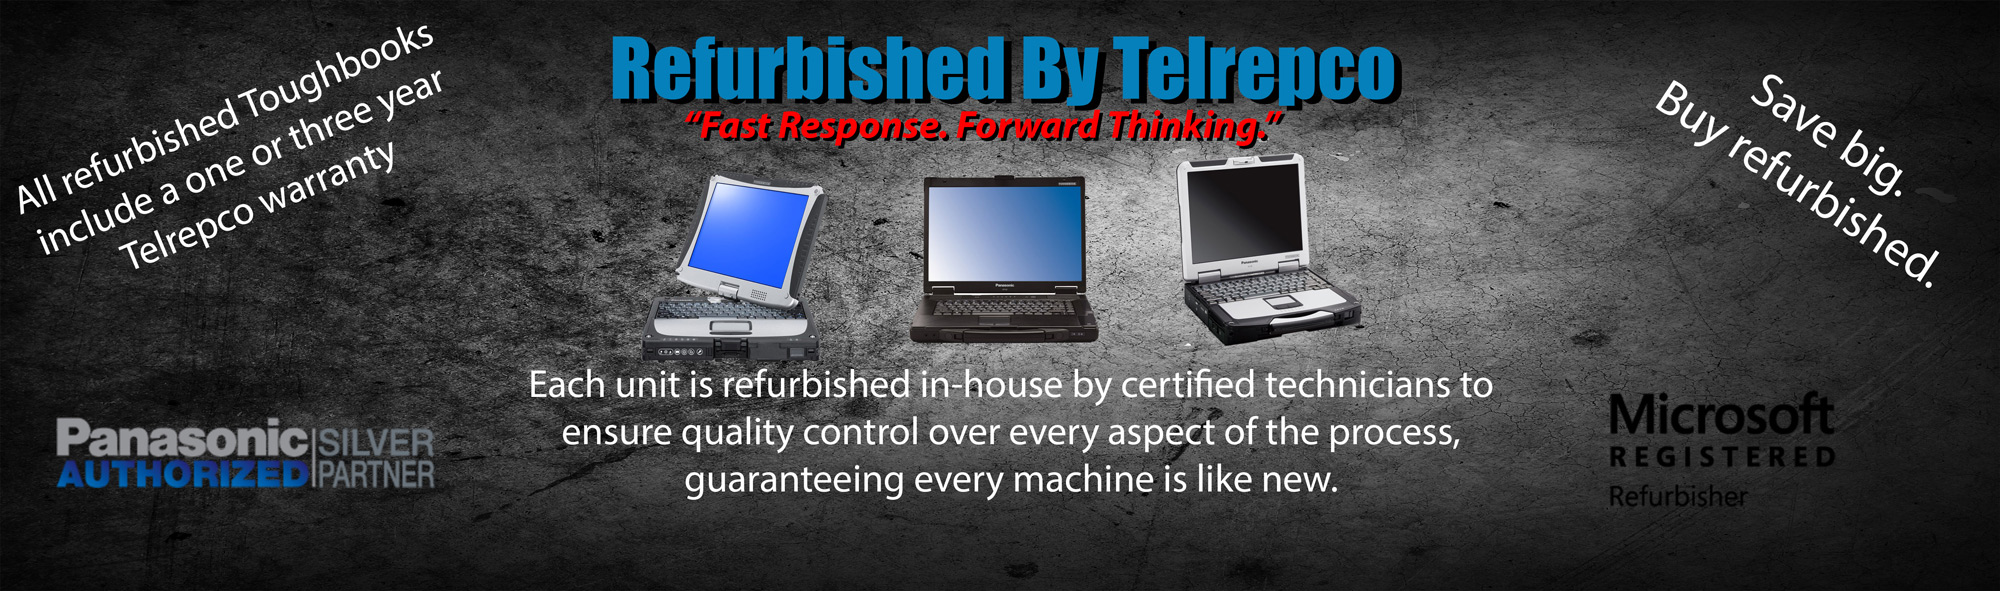 Each Panasonic Toughbook is refurbished in-house by certified technicians to ensure quality control over every aspect of the process, guaranteeing every machine is like new